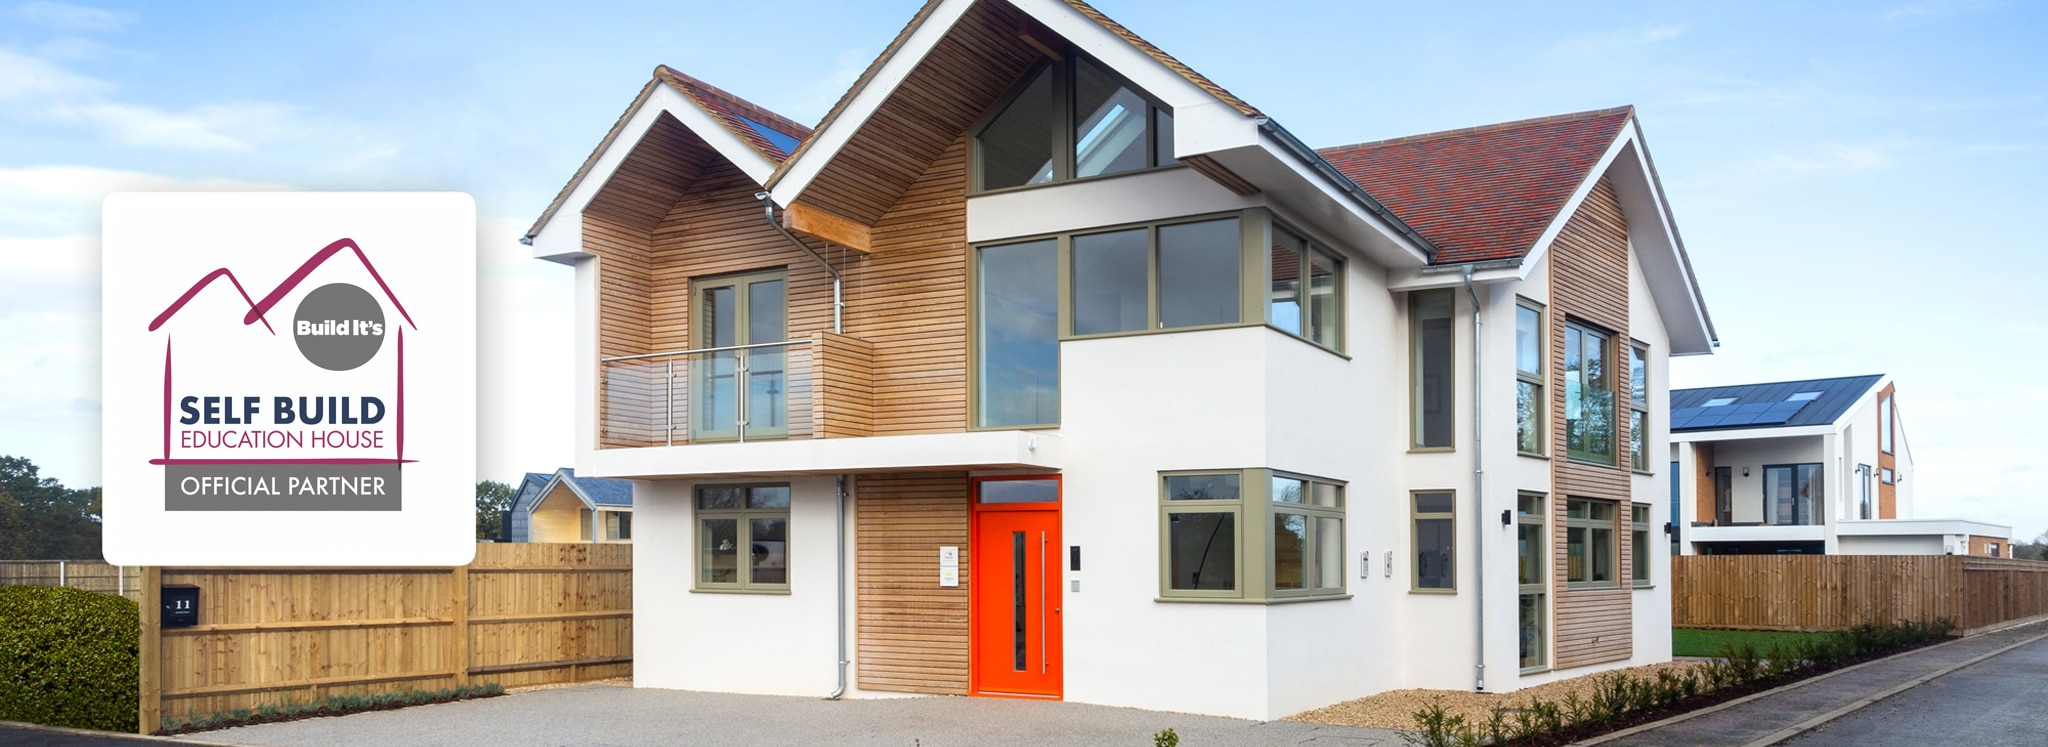 Build it Selfbuild Education House at Graven Hill in Bicester